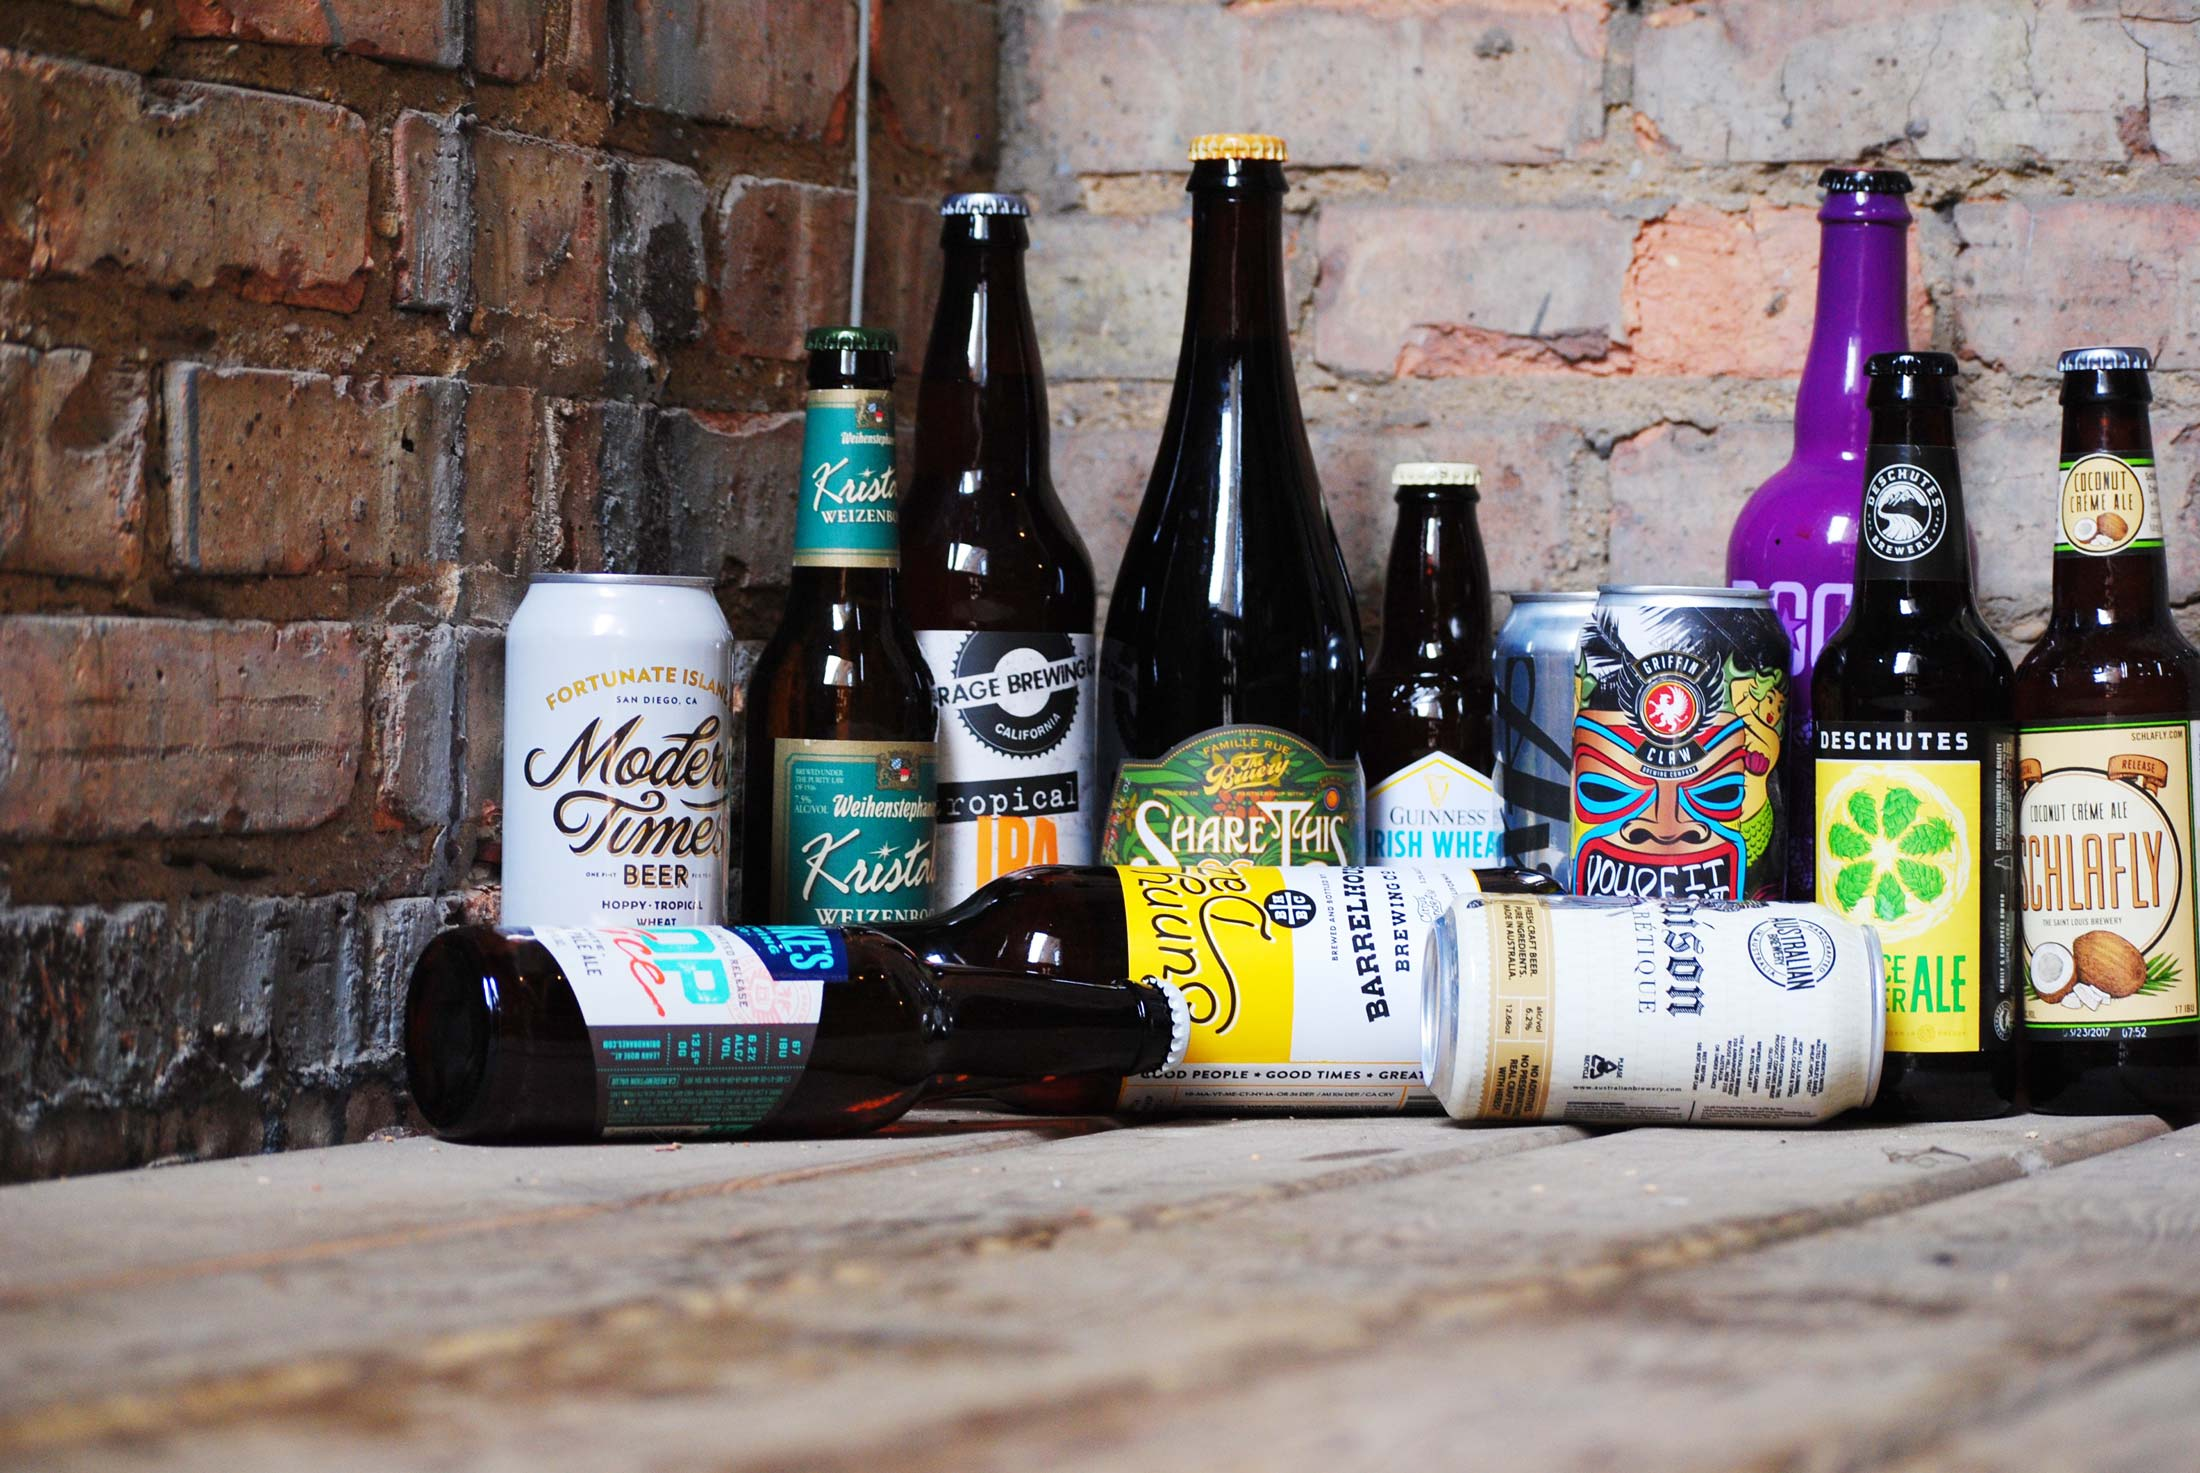 The Hop Reviews Vol. 12: A Monthly Beer Review